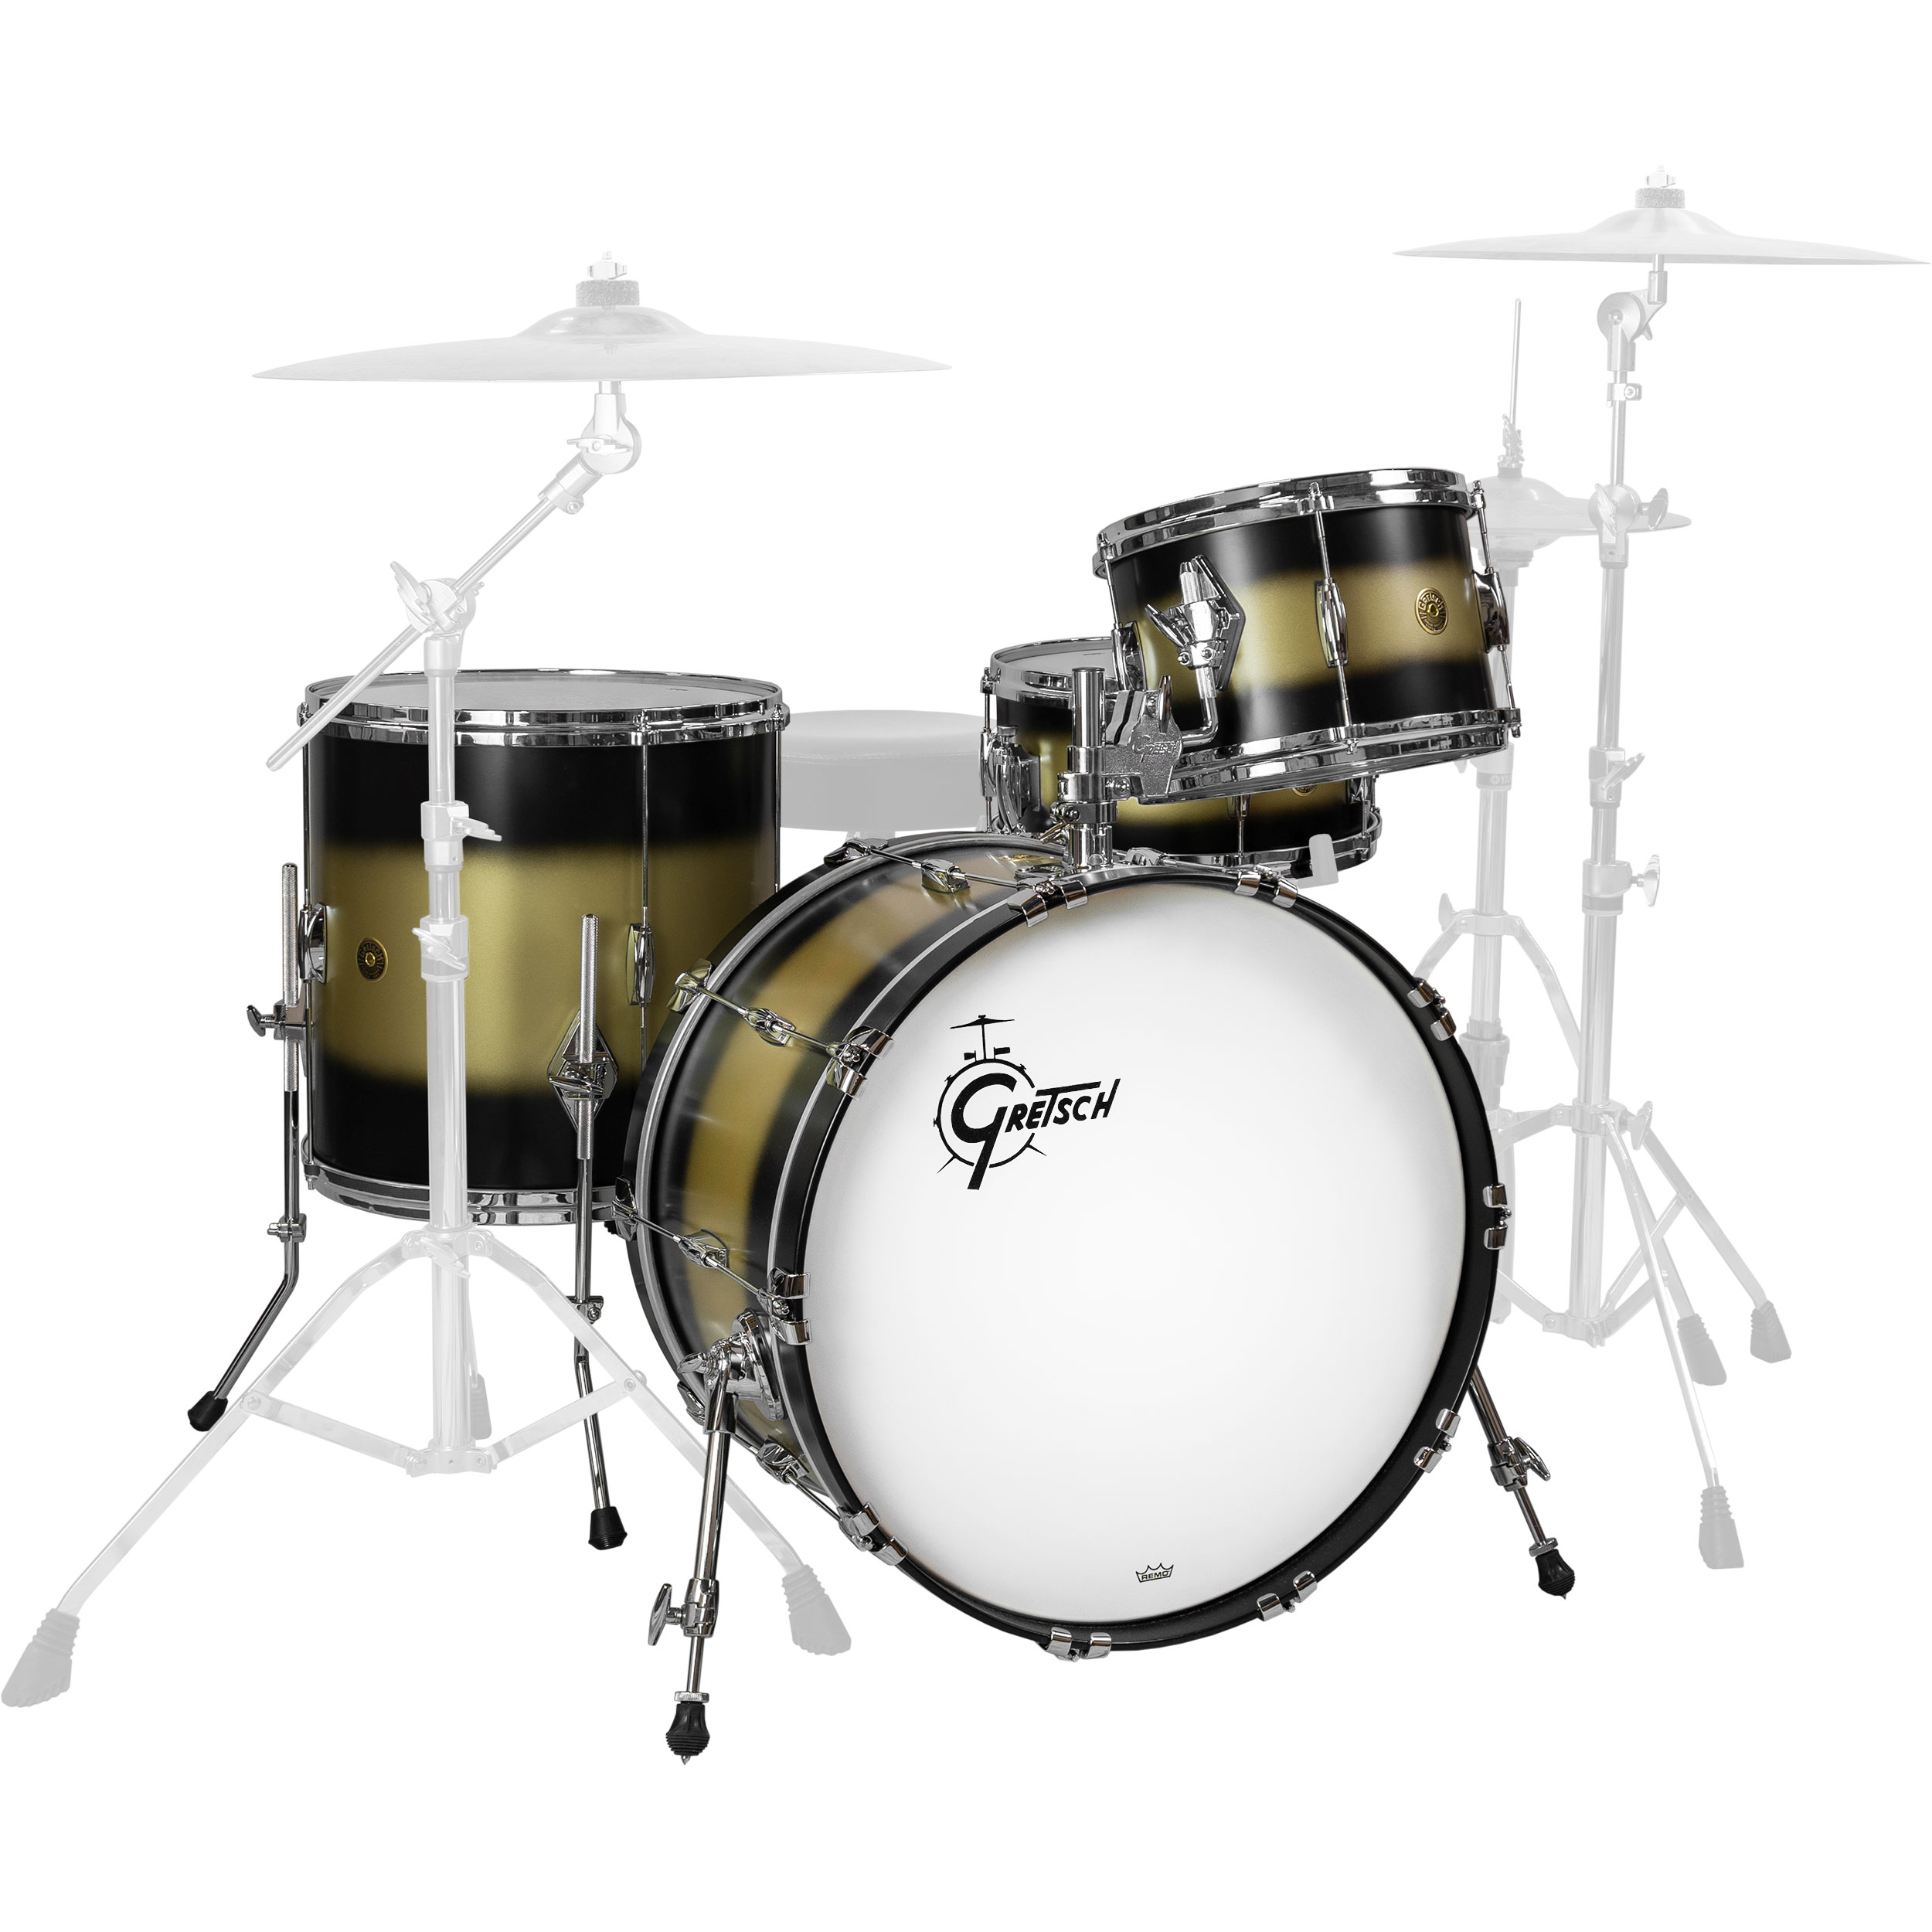 """Gretsch USA Custom Heritage 4-Piece Drum Set Shell Pack (22"""" Bass, 12/16"""" Toms, 14"""" Snare) in Black Gold Duco"""